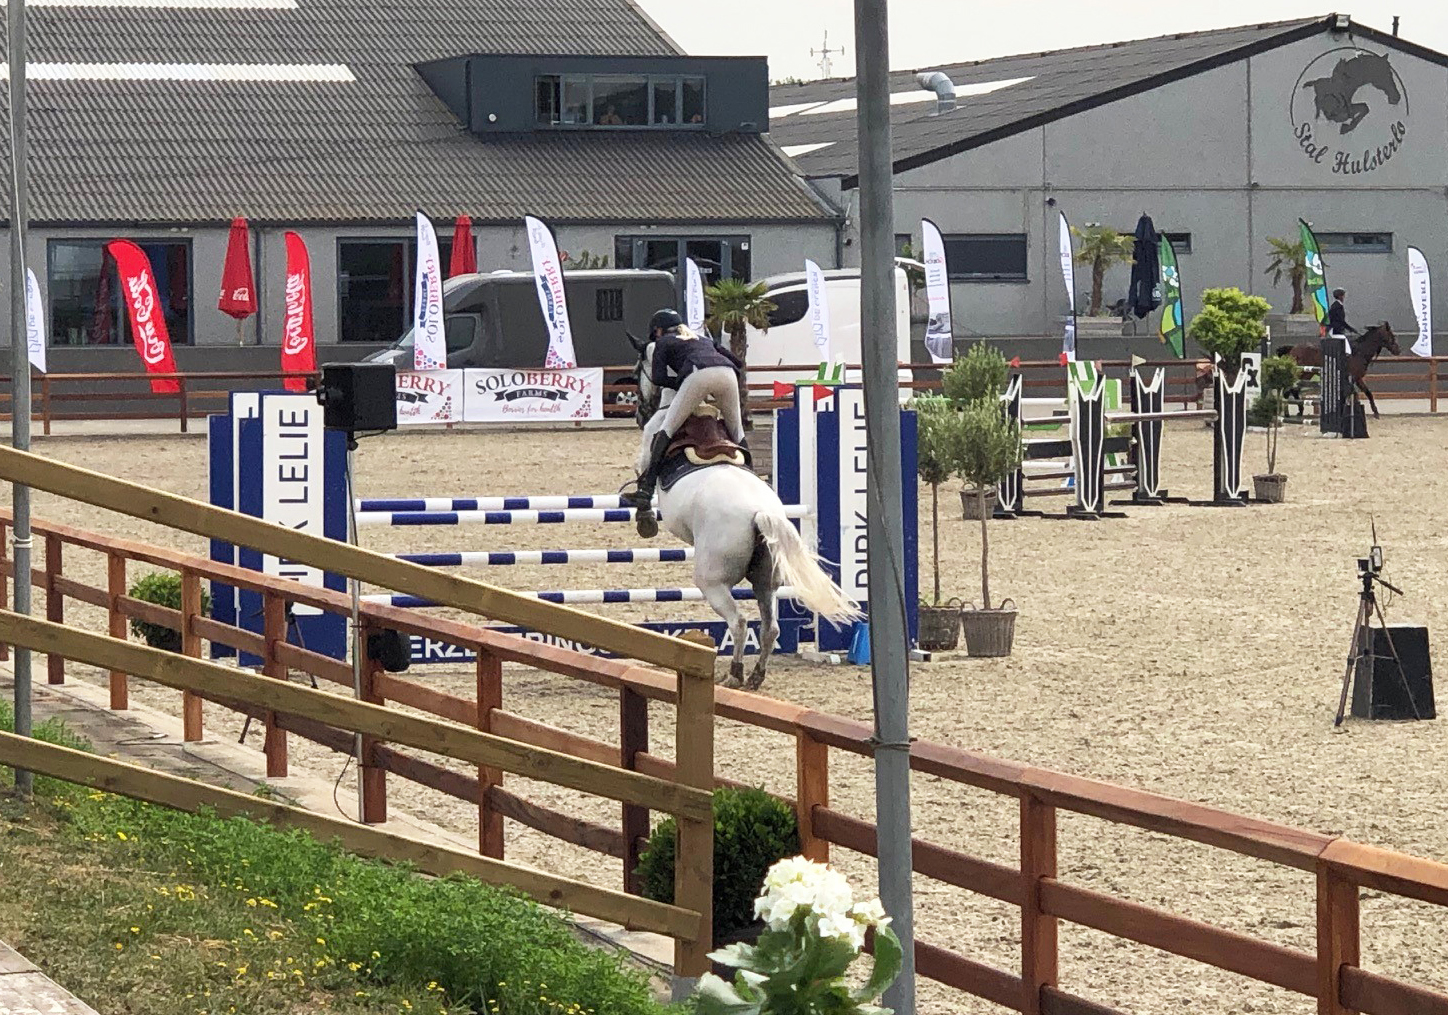 Show Jumping - Soloberry